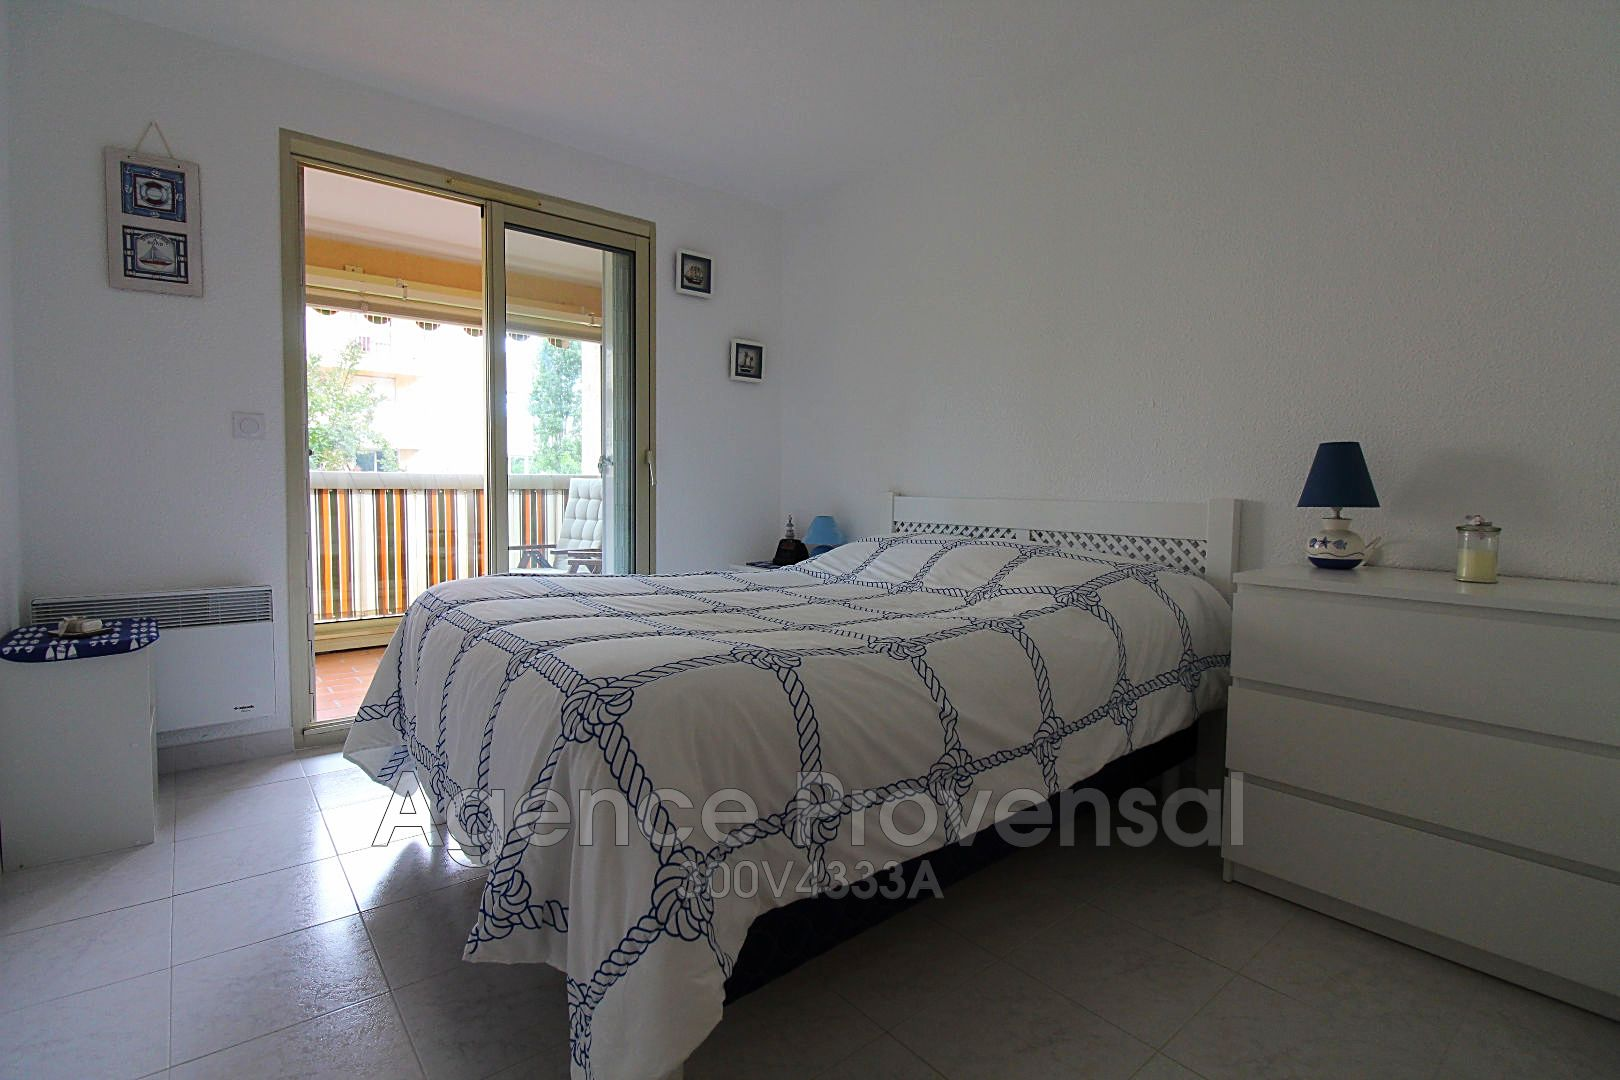 Appartement t2 sainte maxime agence provensal for Appartement agence